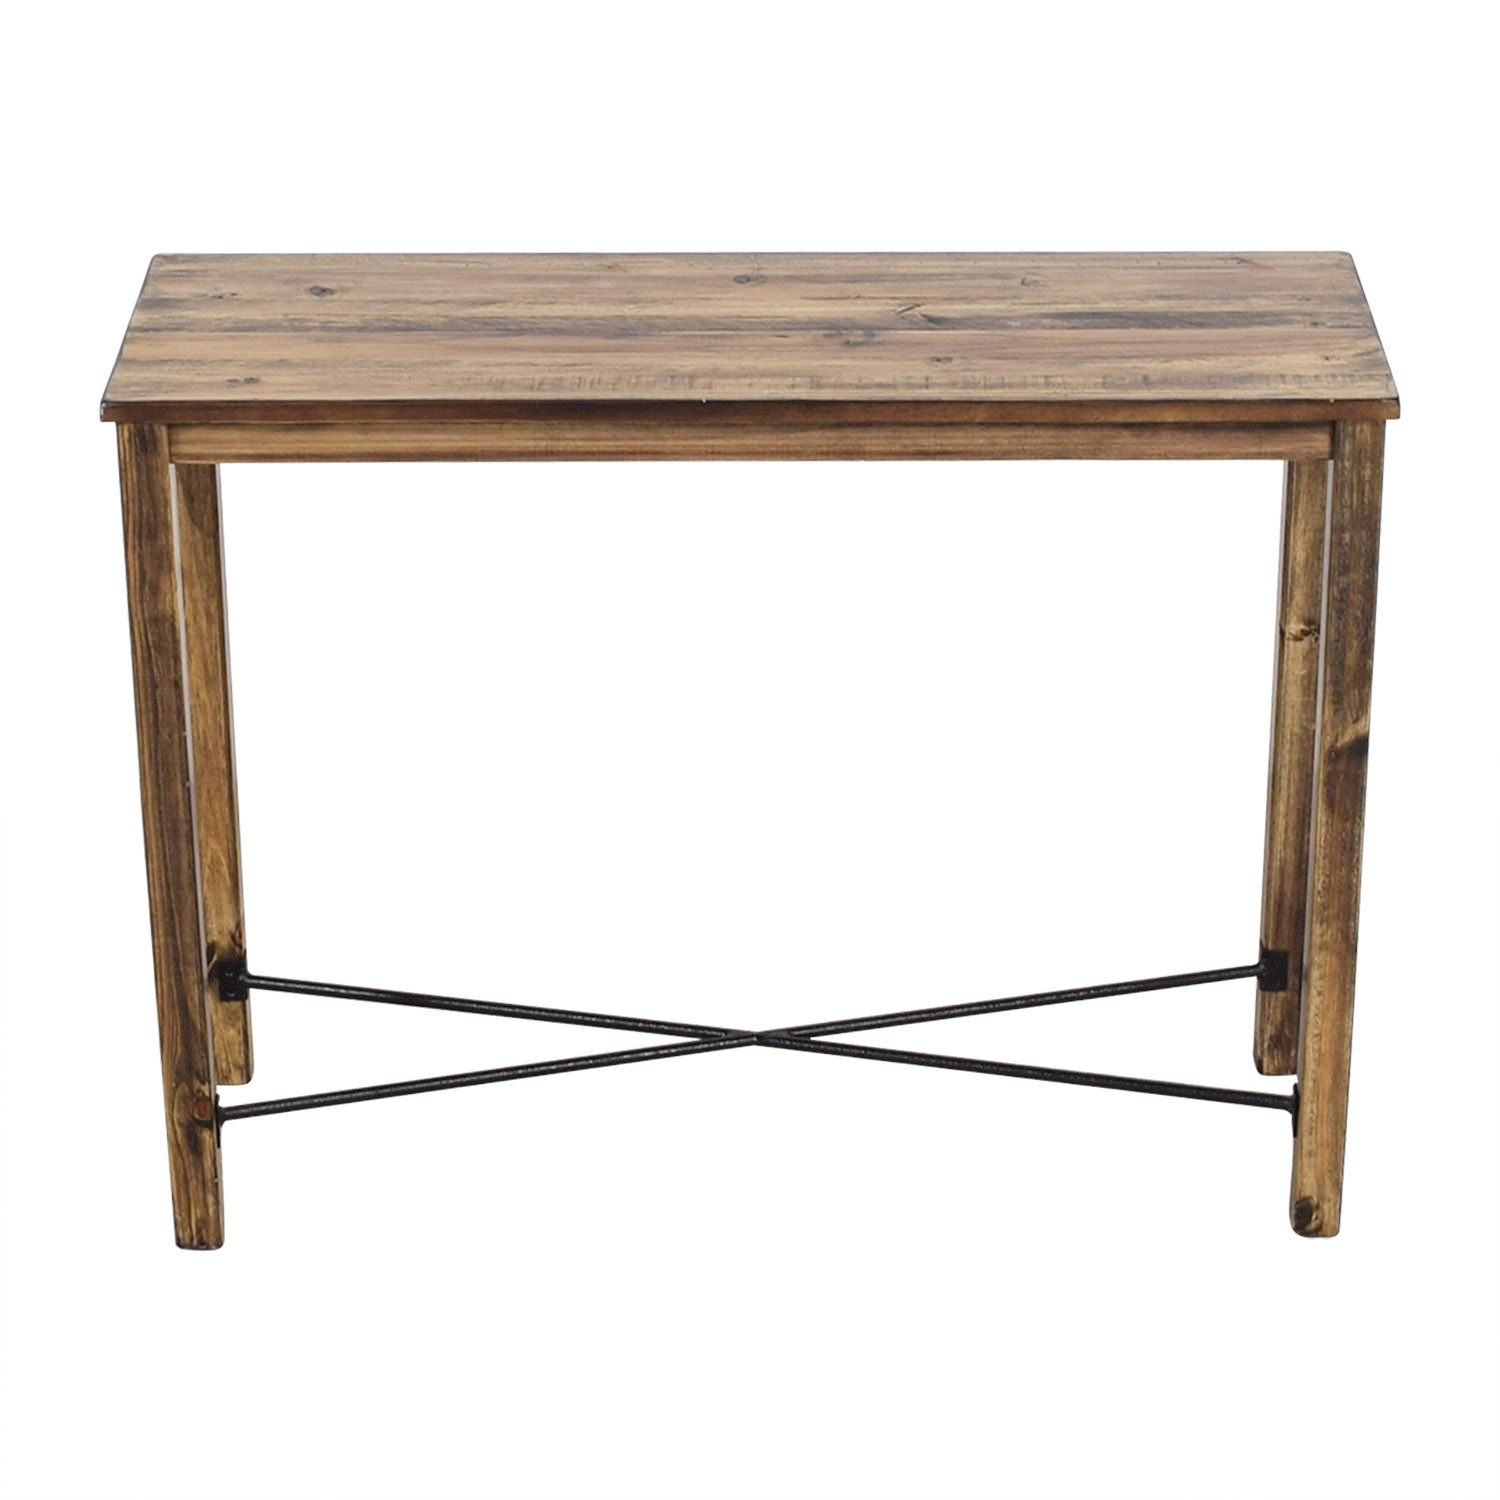 Iron Cross Bar Distressed Hardwood Console Table second hand